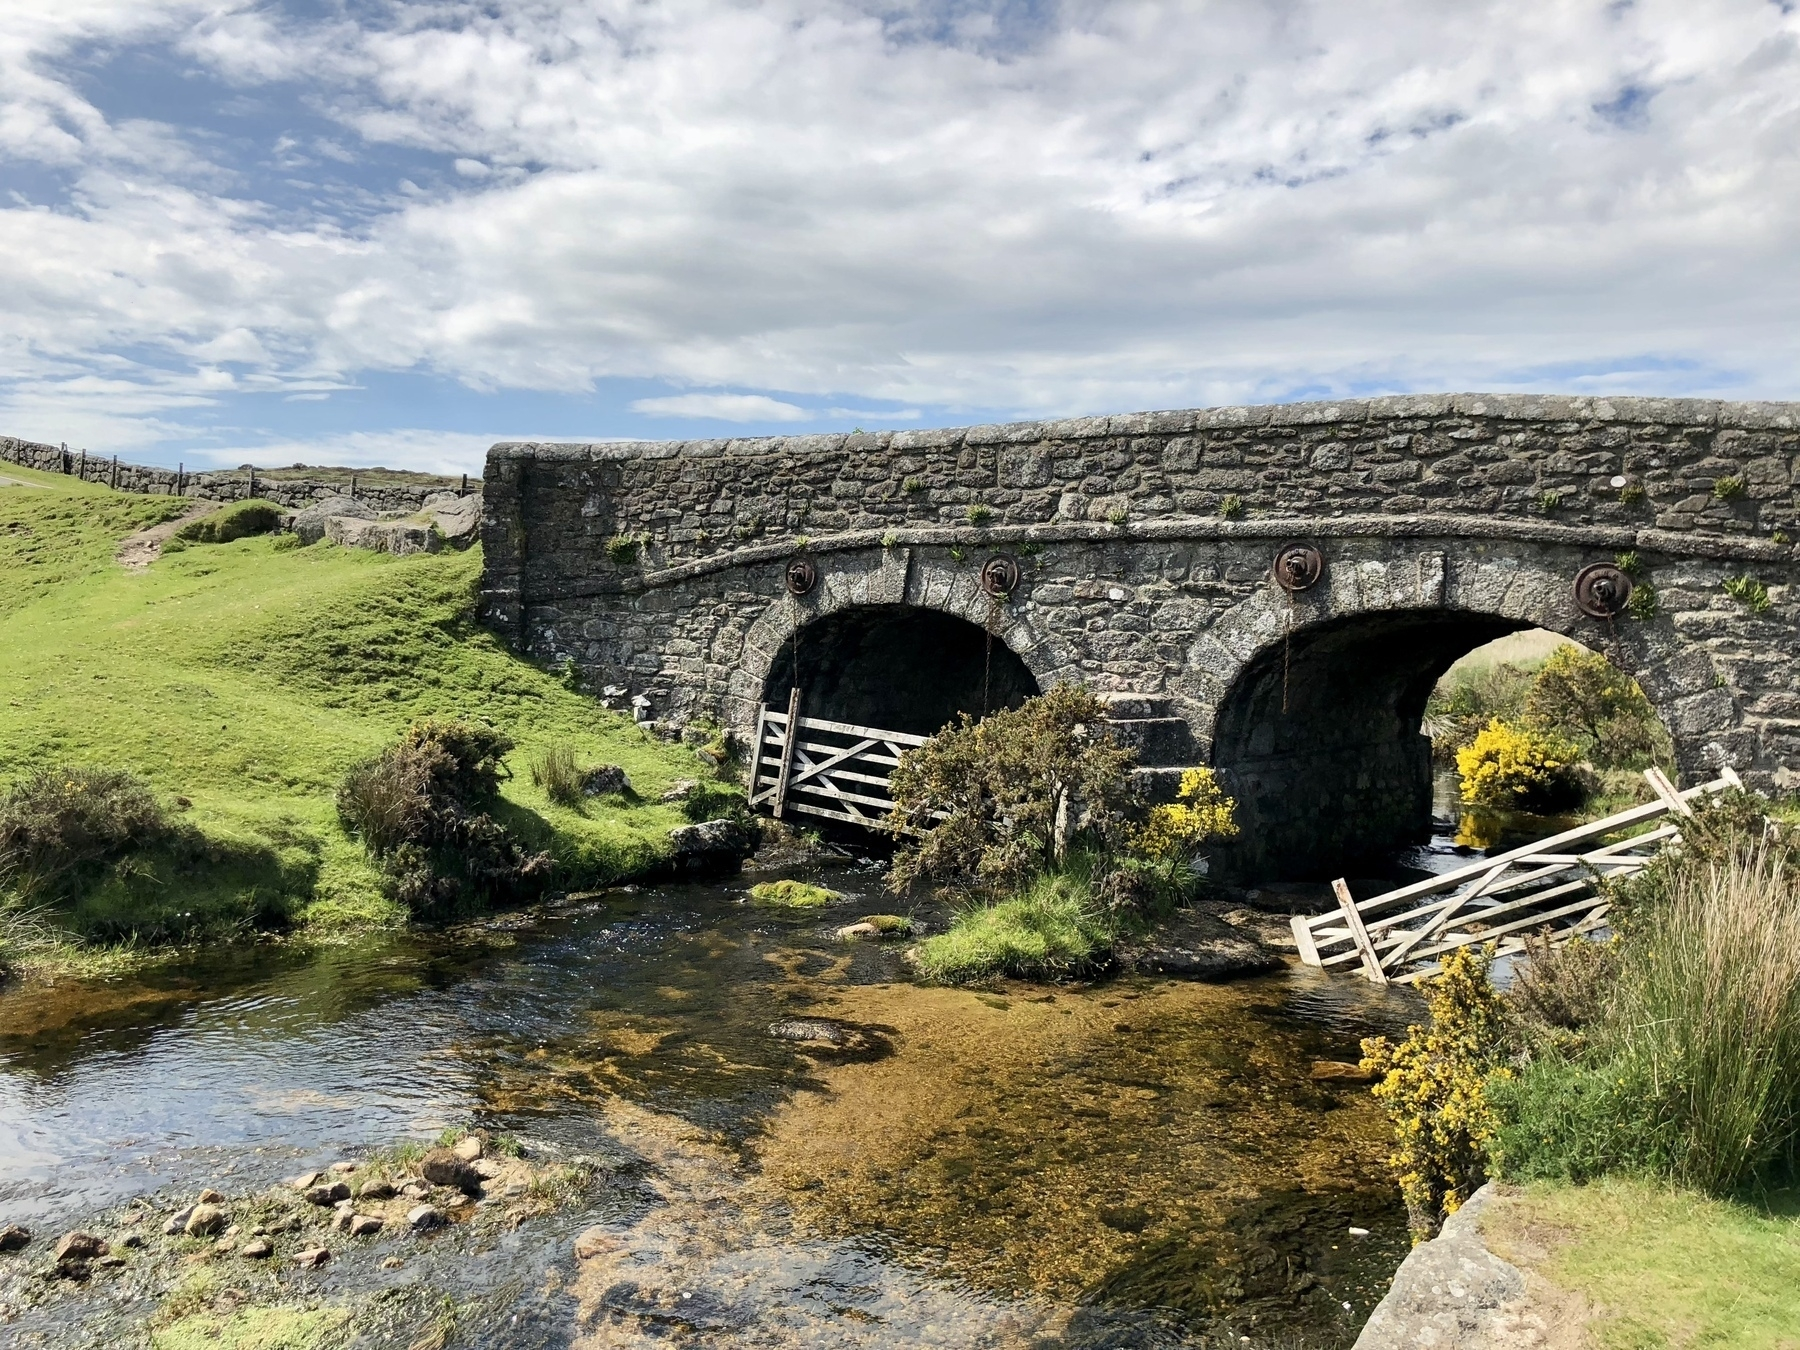 A stone bridge over a creek with mossy grass on the banks